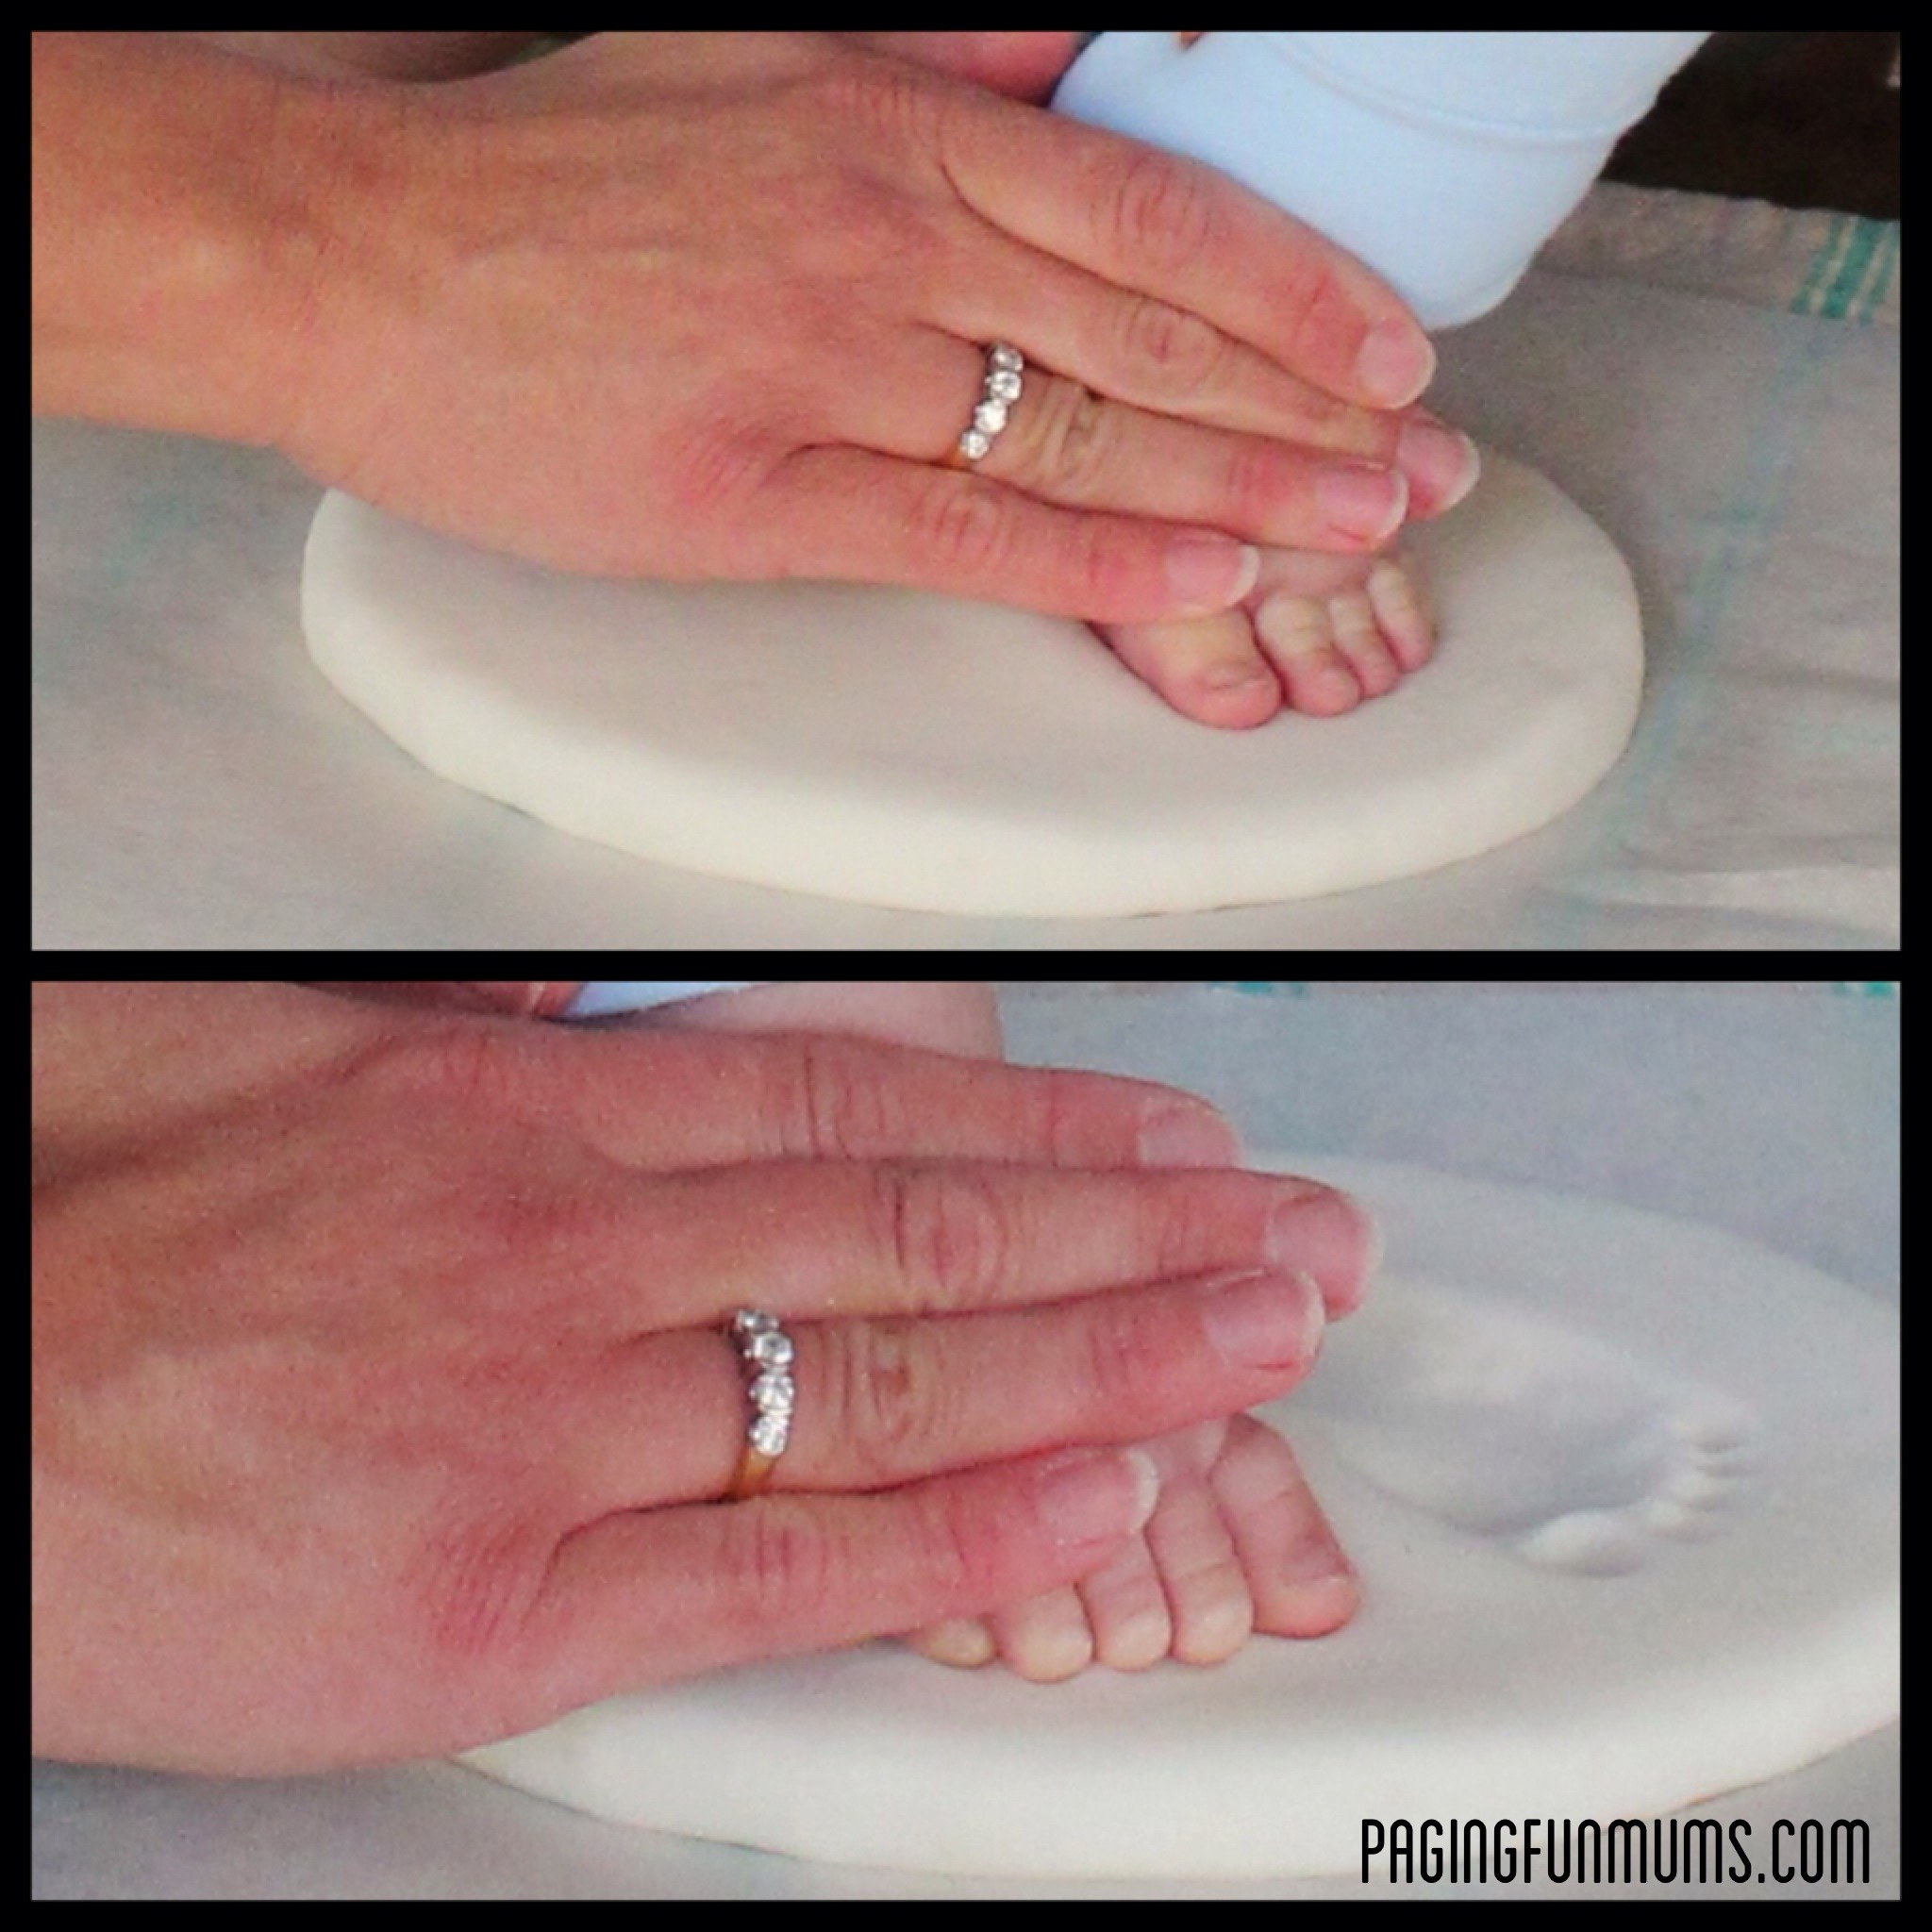 Best ideas about DIY Baby Handprint . Save or Pin DIY Baby Keepsake using Homemade Clay Paging Fun Mums Now.